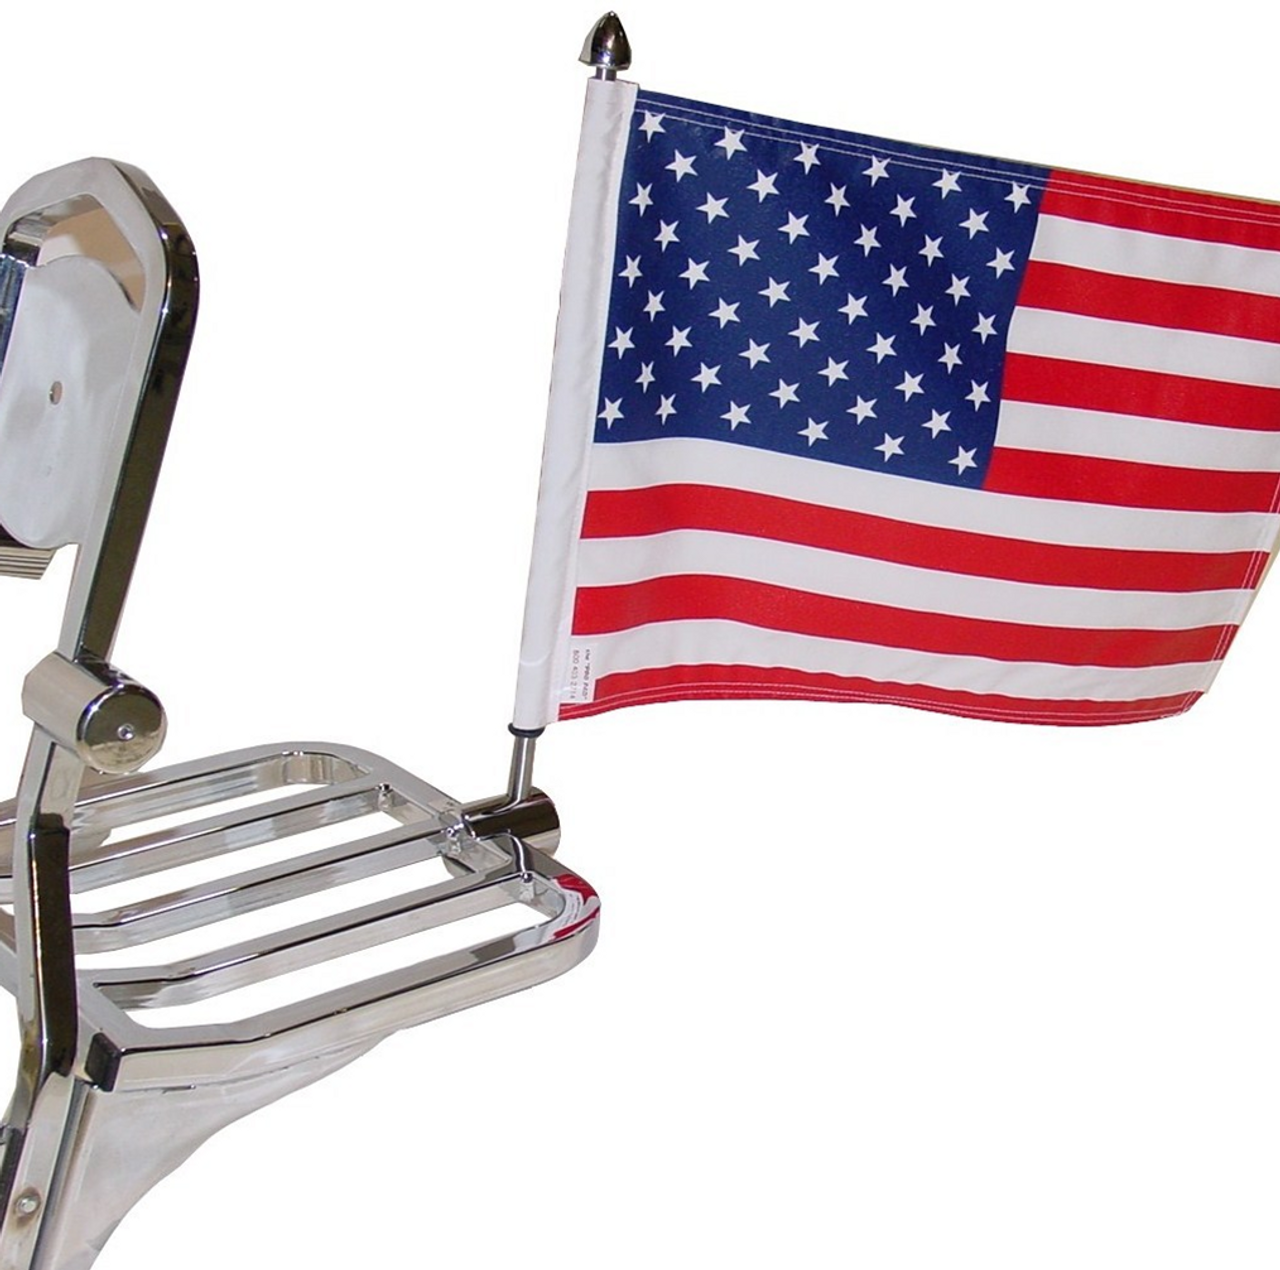 """#RFM-SQ15 with 10""""x15"""" USA Parade flag mounted on Harley sport rack (rack not included)"""